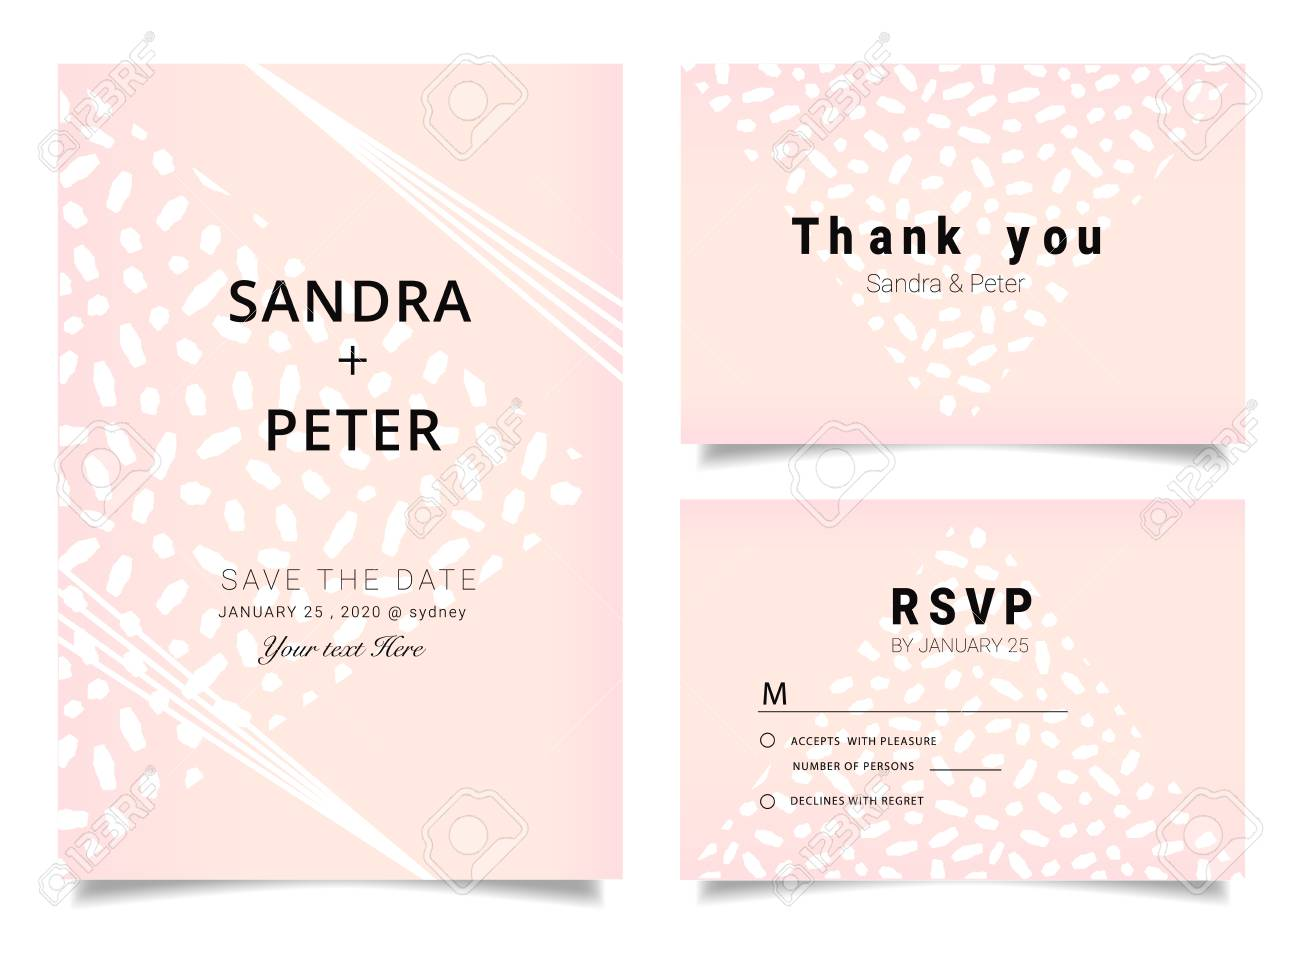 Wedding Invitations Set Thank You Card Rsvp Design With Rose Gold